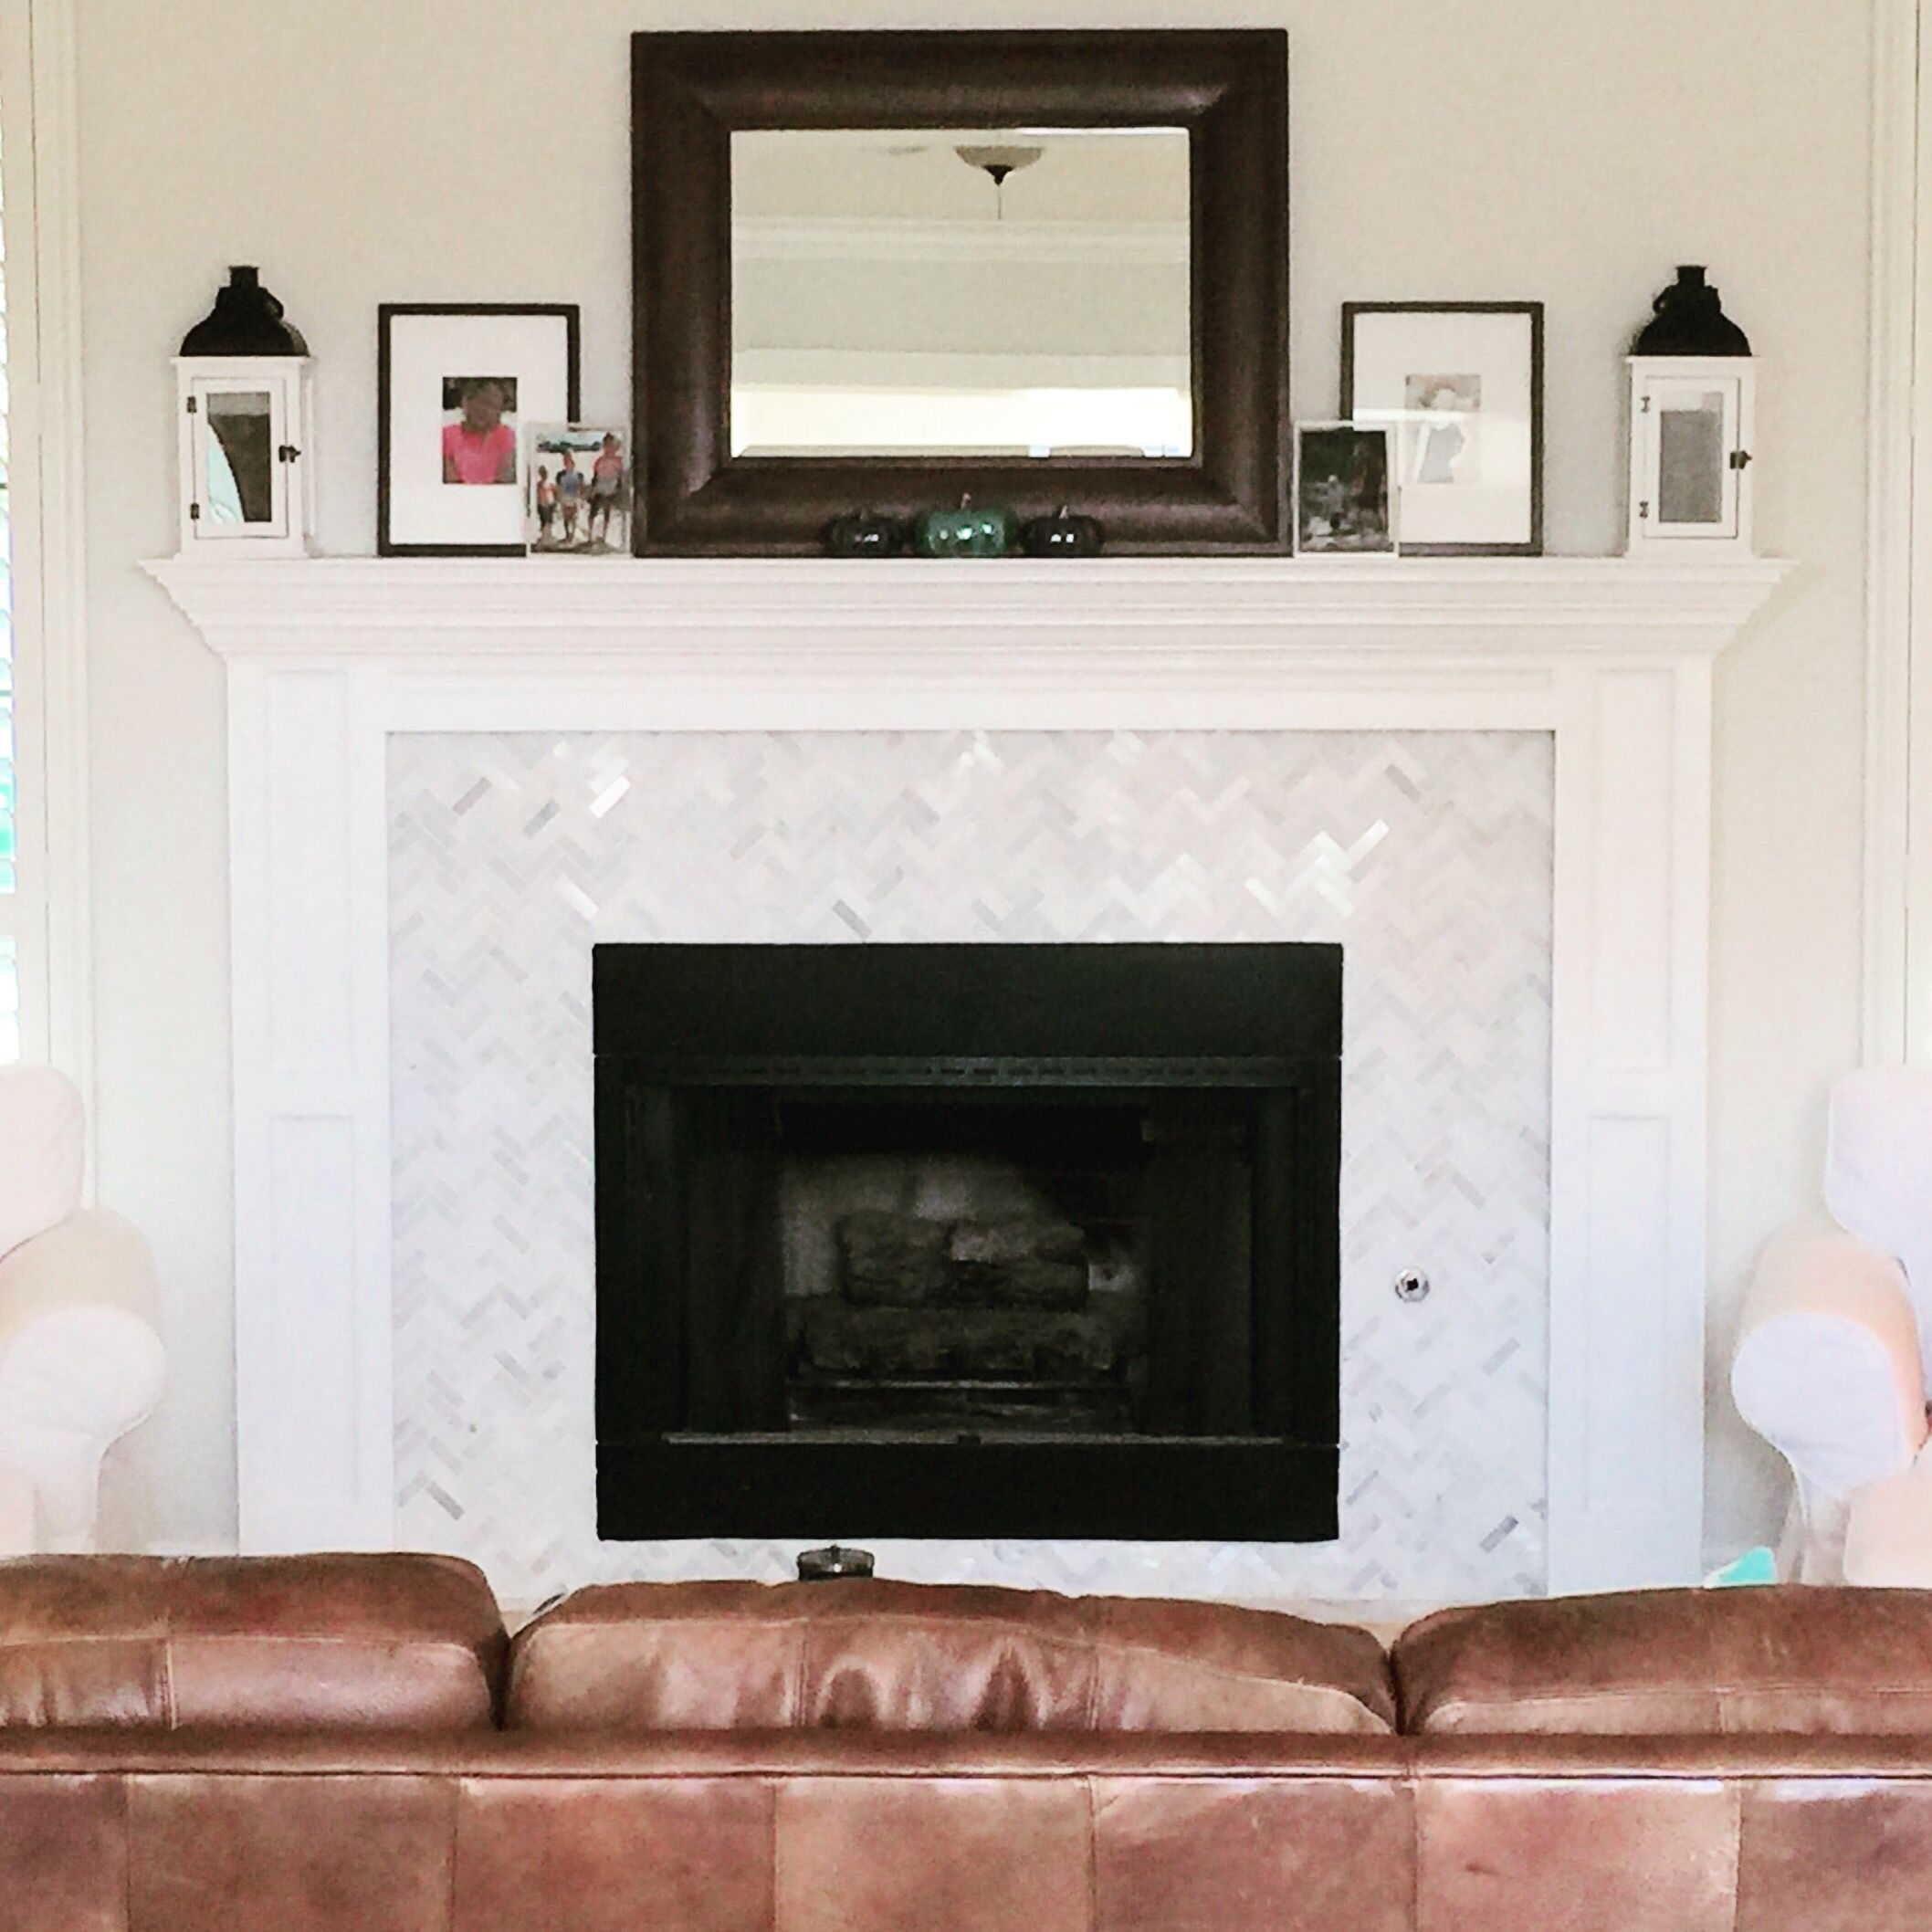 Harringbone Marble Fireplace Remodel #Fireplacemirror